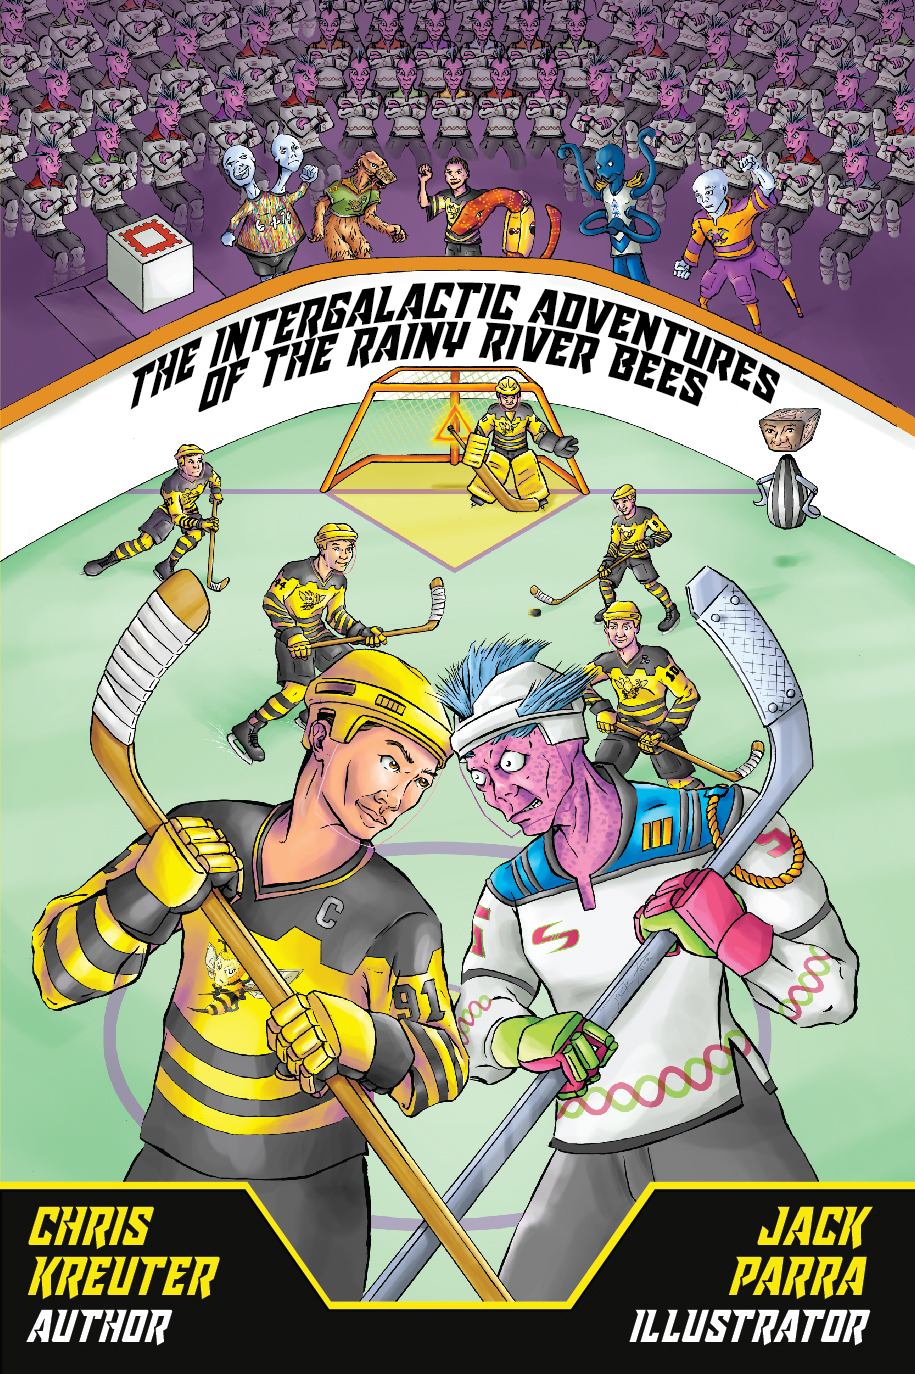 Intergalatic Adventures of the Rainy River Bees - The Rainy River Bees are an elite peewee hockey team. Moments after winning a championship, they get abducted by aliens, aliens that love hockey! They rocket across the universe to play in the Intergalactic Hockey Championship & save...everyone & everything. It's up to the twelve Bees and their new friends to save the day.